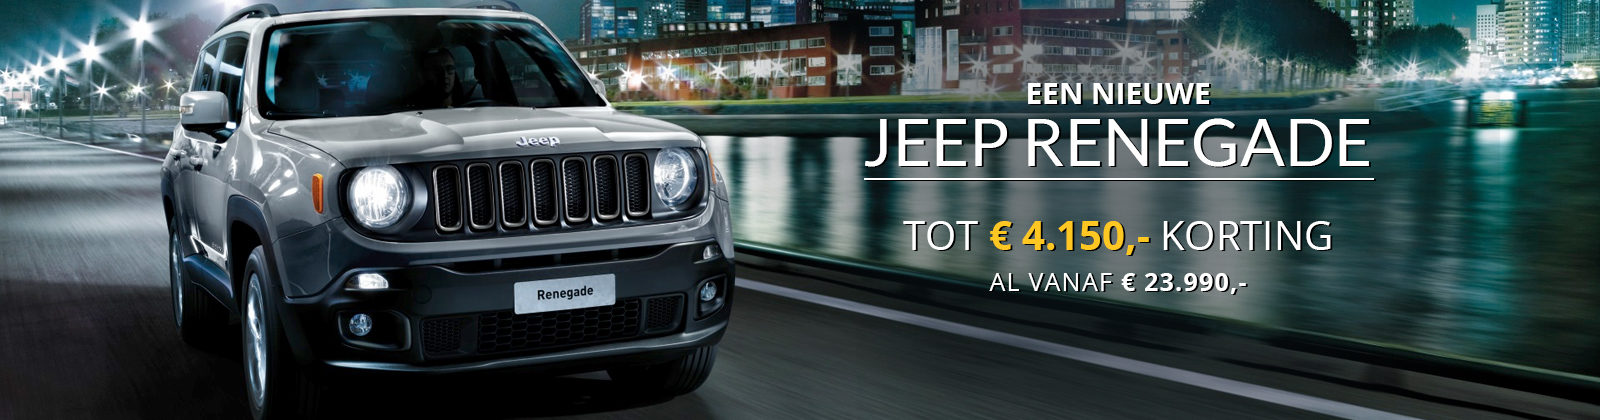 Jeep Renegade 5th Anniversary